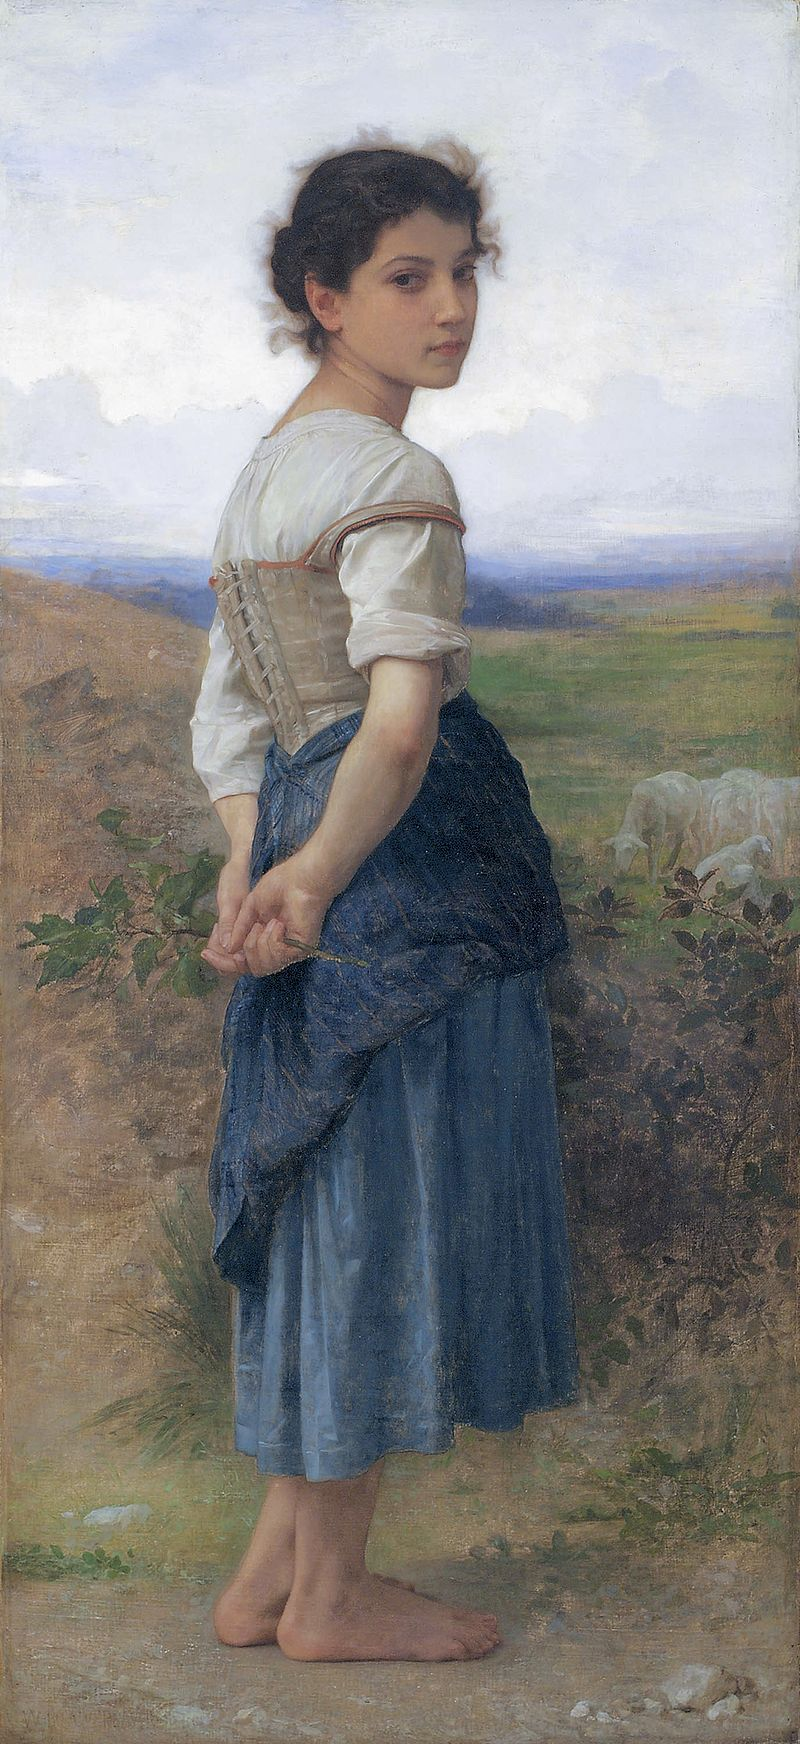 The_young_shepherdess,_by_William-Adolphe_Bouguereau.jpg